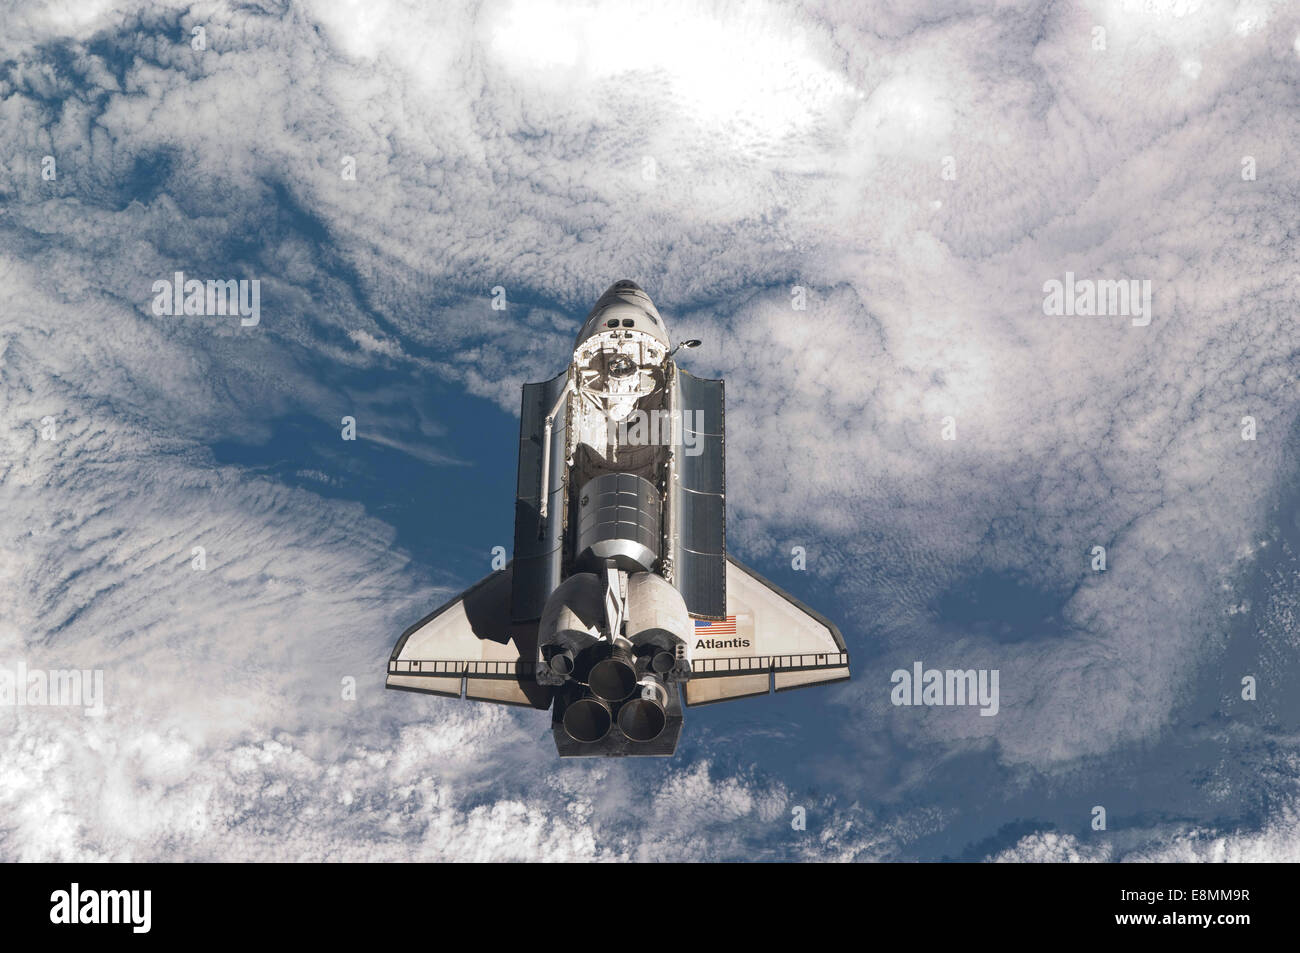 July 10, 2011 - Space shuttle Atlantis backdropped by a cloud covered Earth. - Stock Image